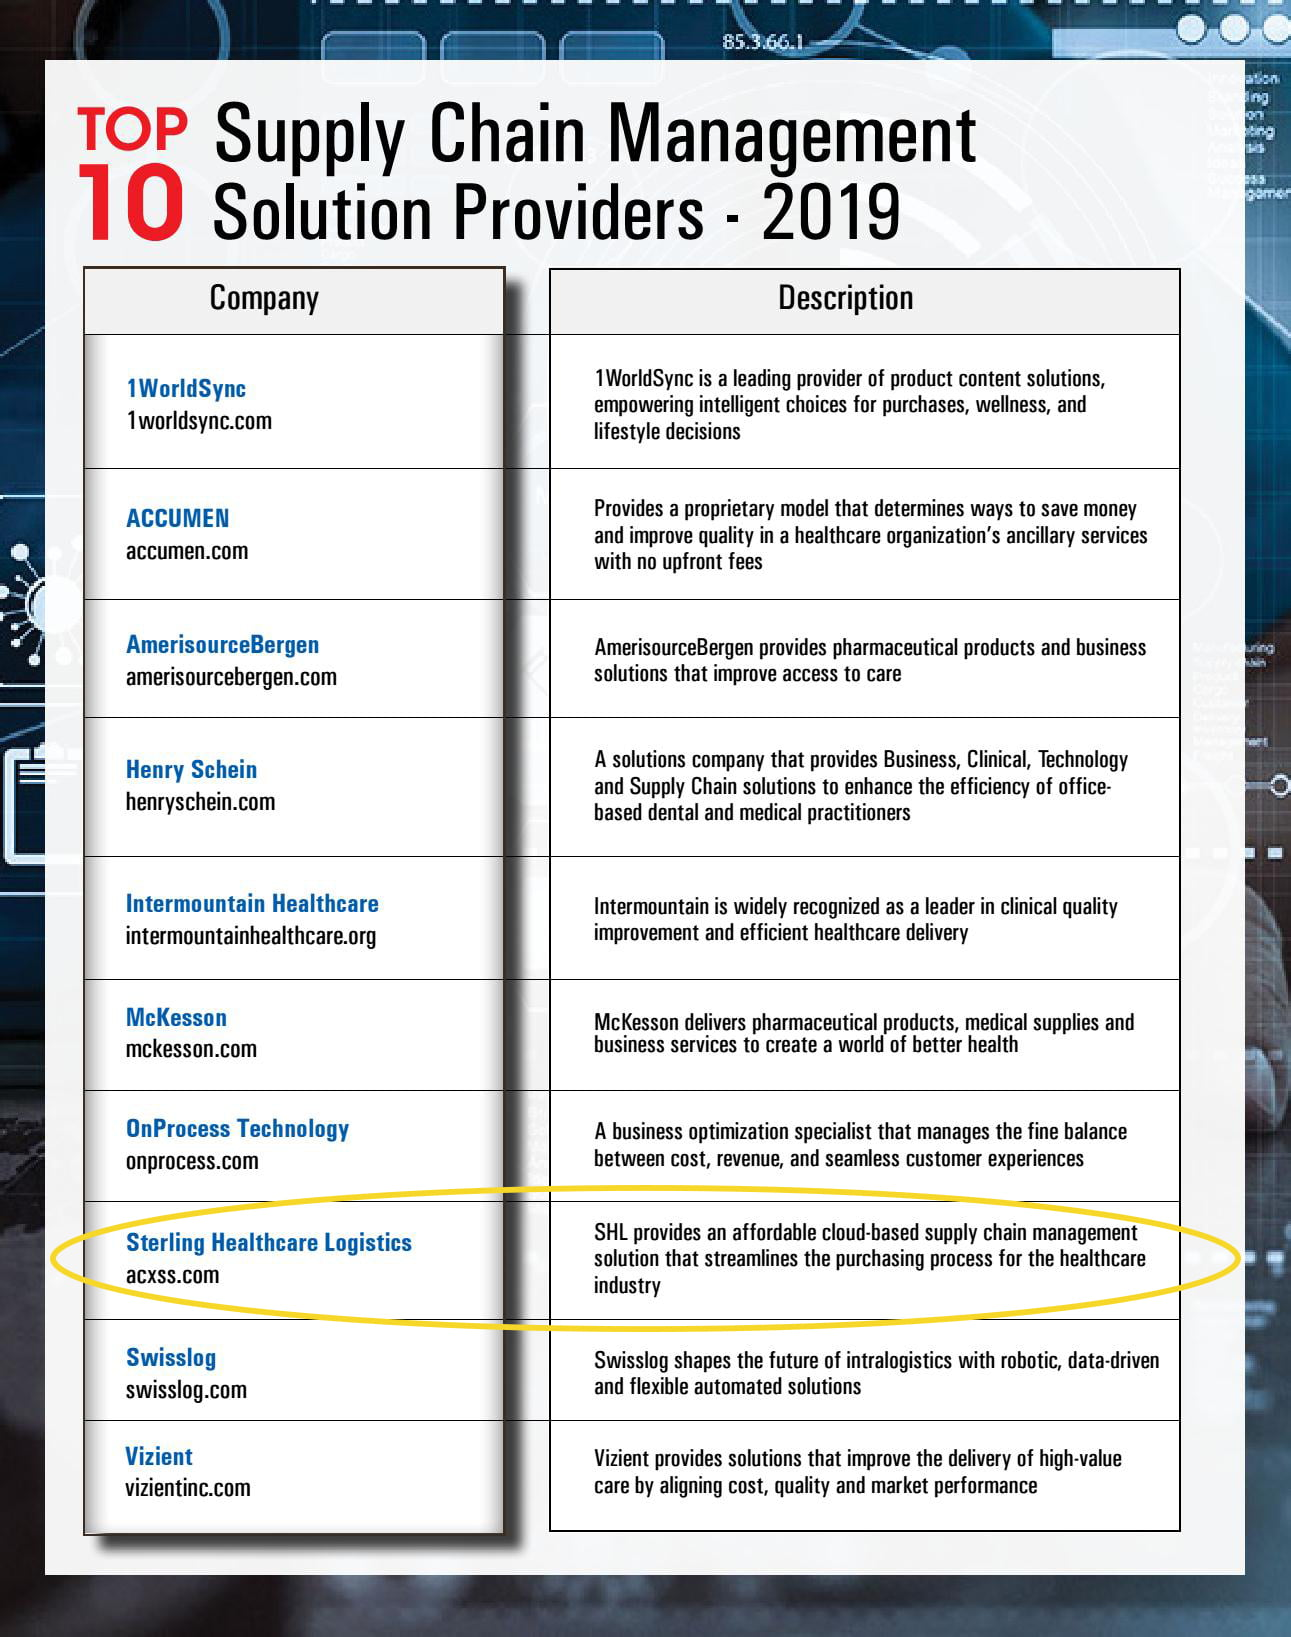 Sterling Healthcare Logistics Recognized as One of the Top 10 Supply Chain Management Solution Providers of 2019